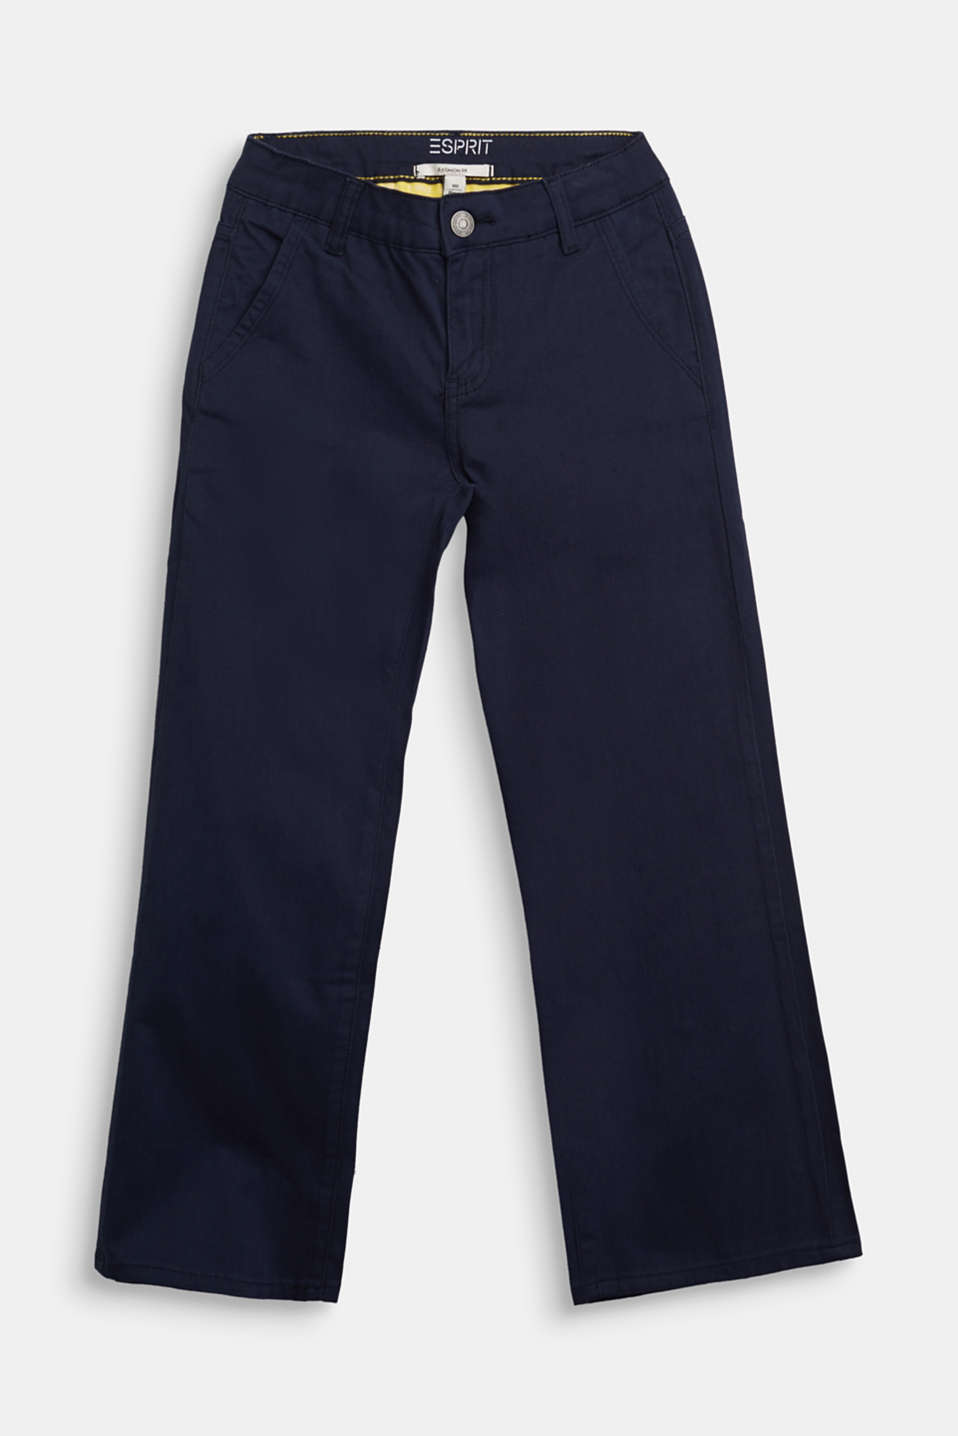 Esprit - Pantalon ample en coton stretch